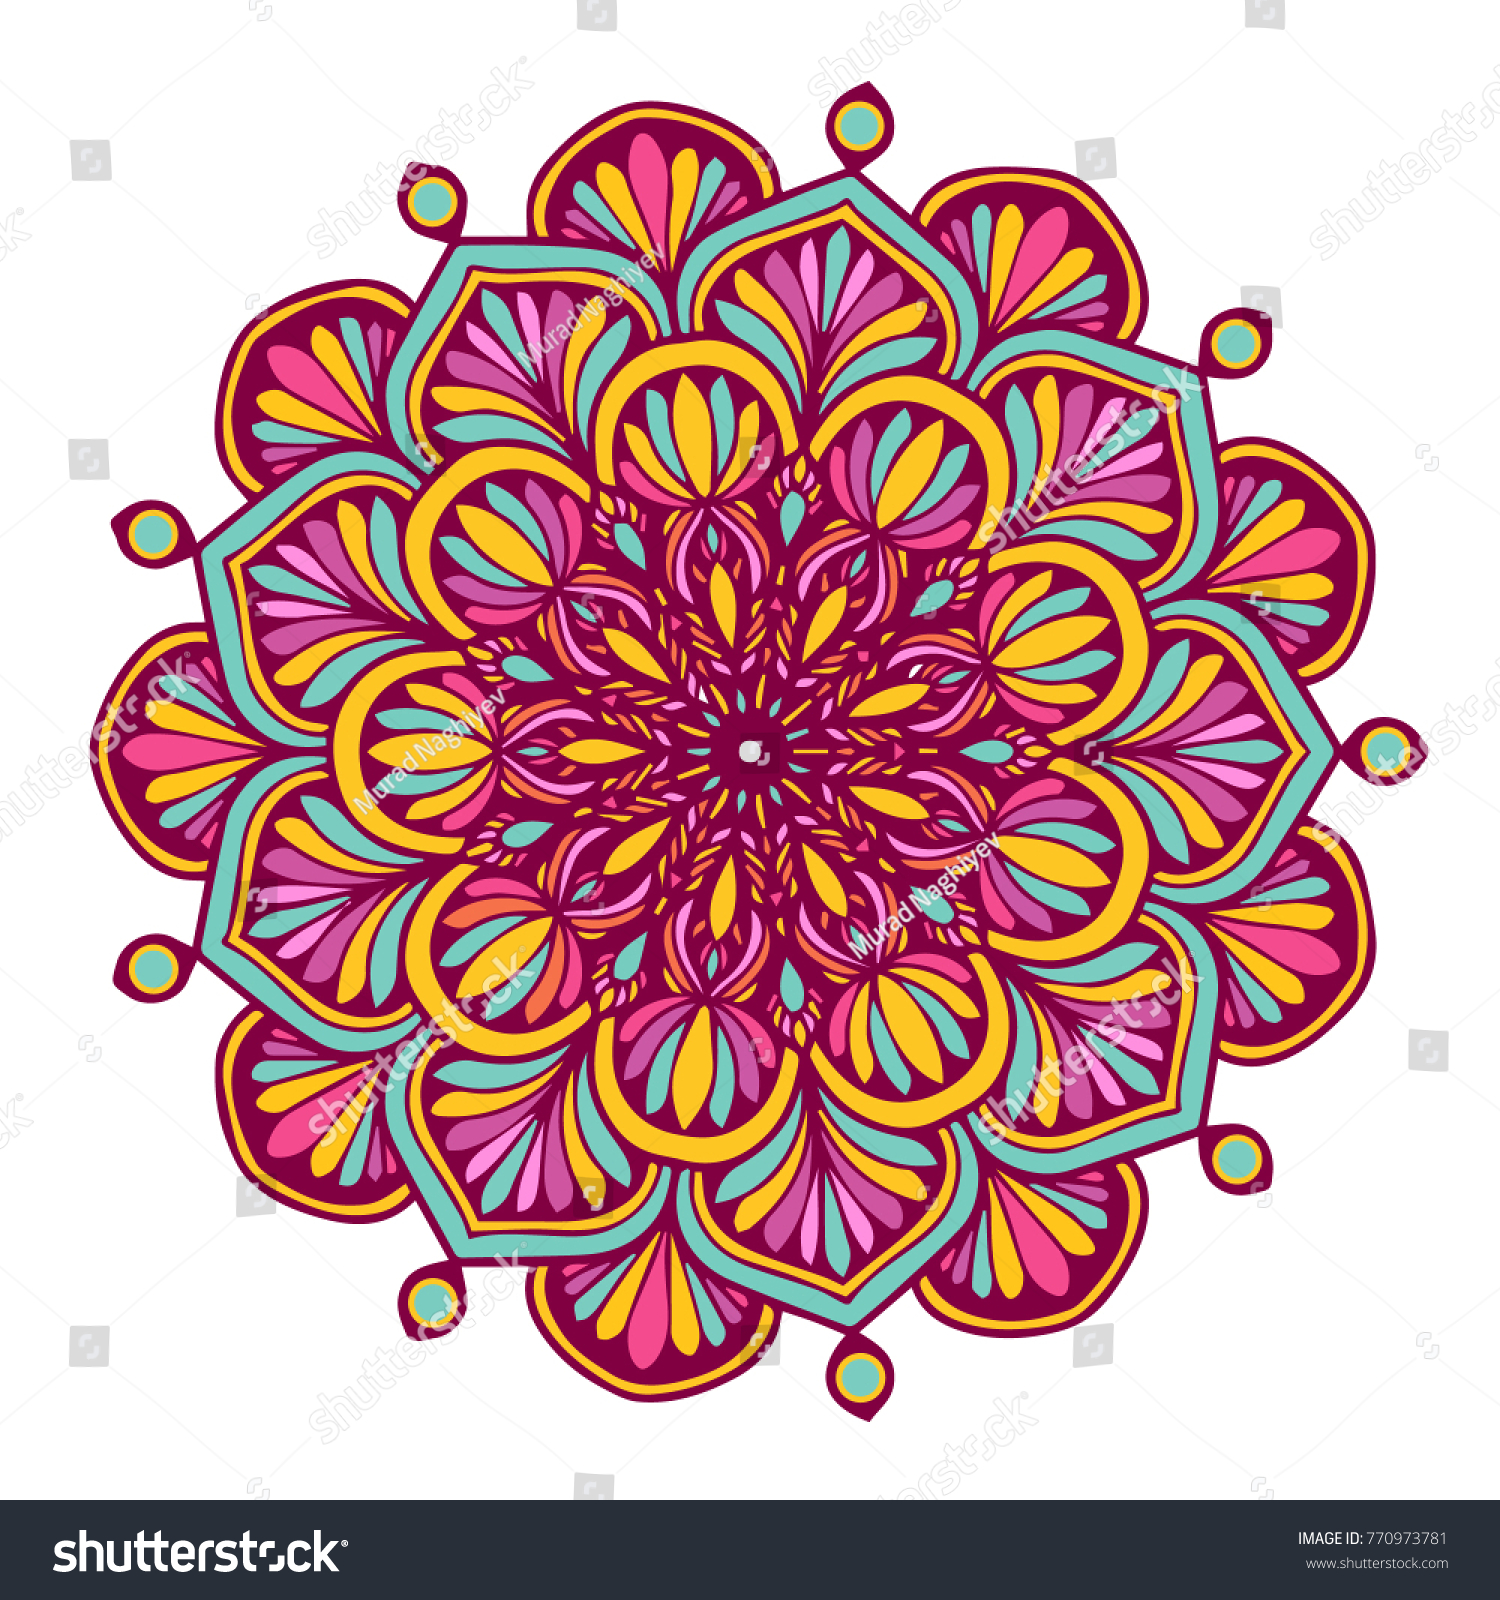 Colorful Mandalas Coloring Book Decorative Round Stock Vector ...